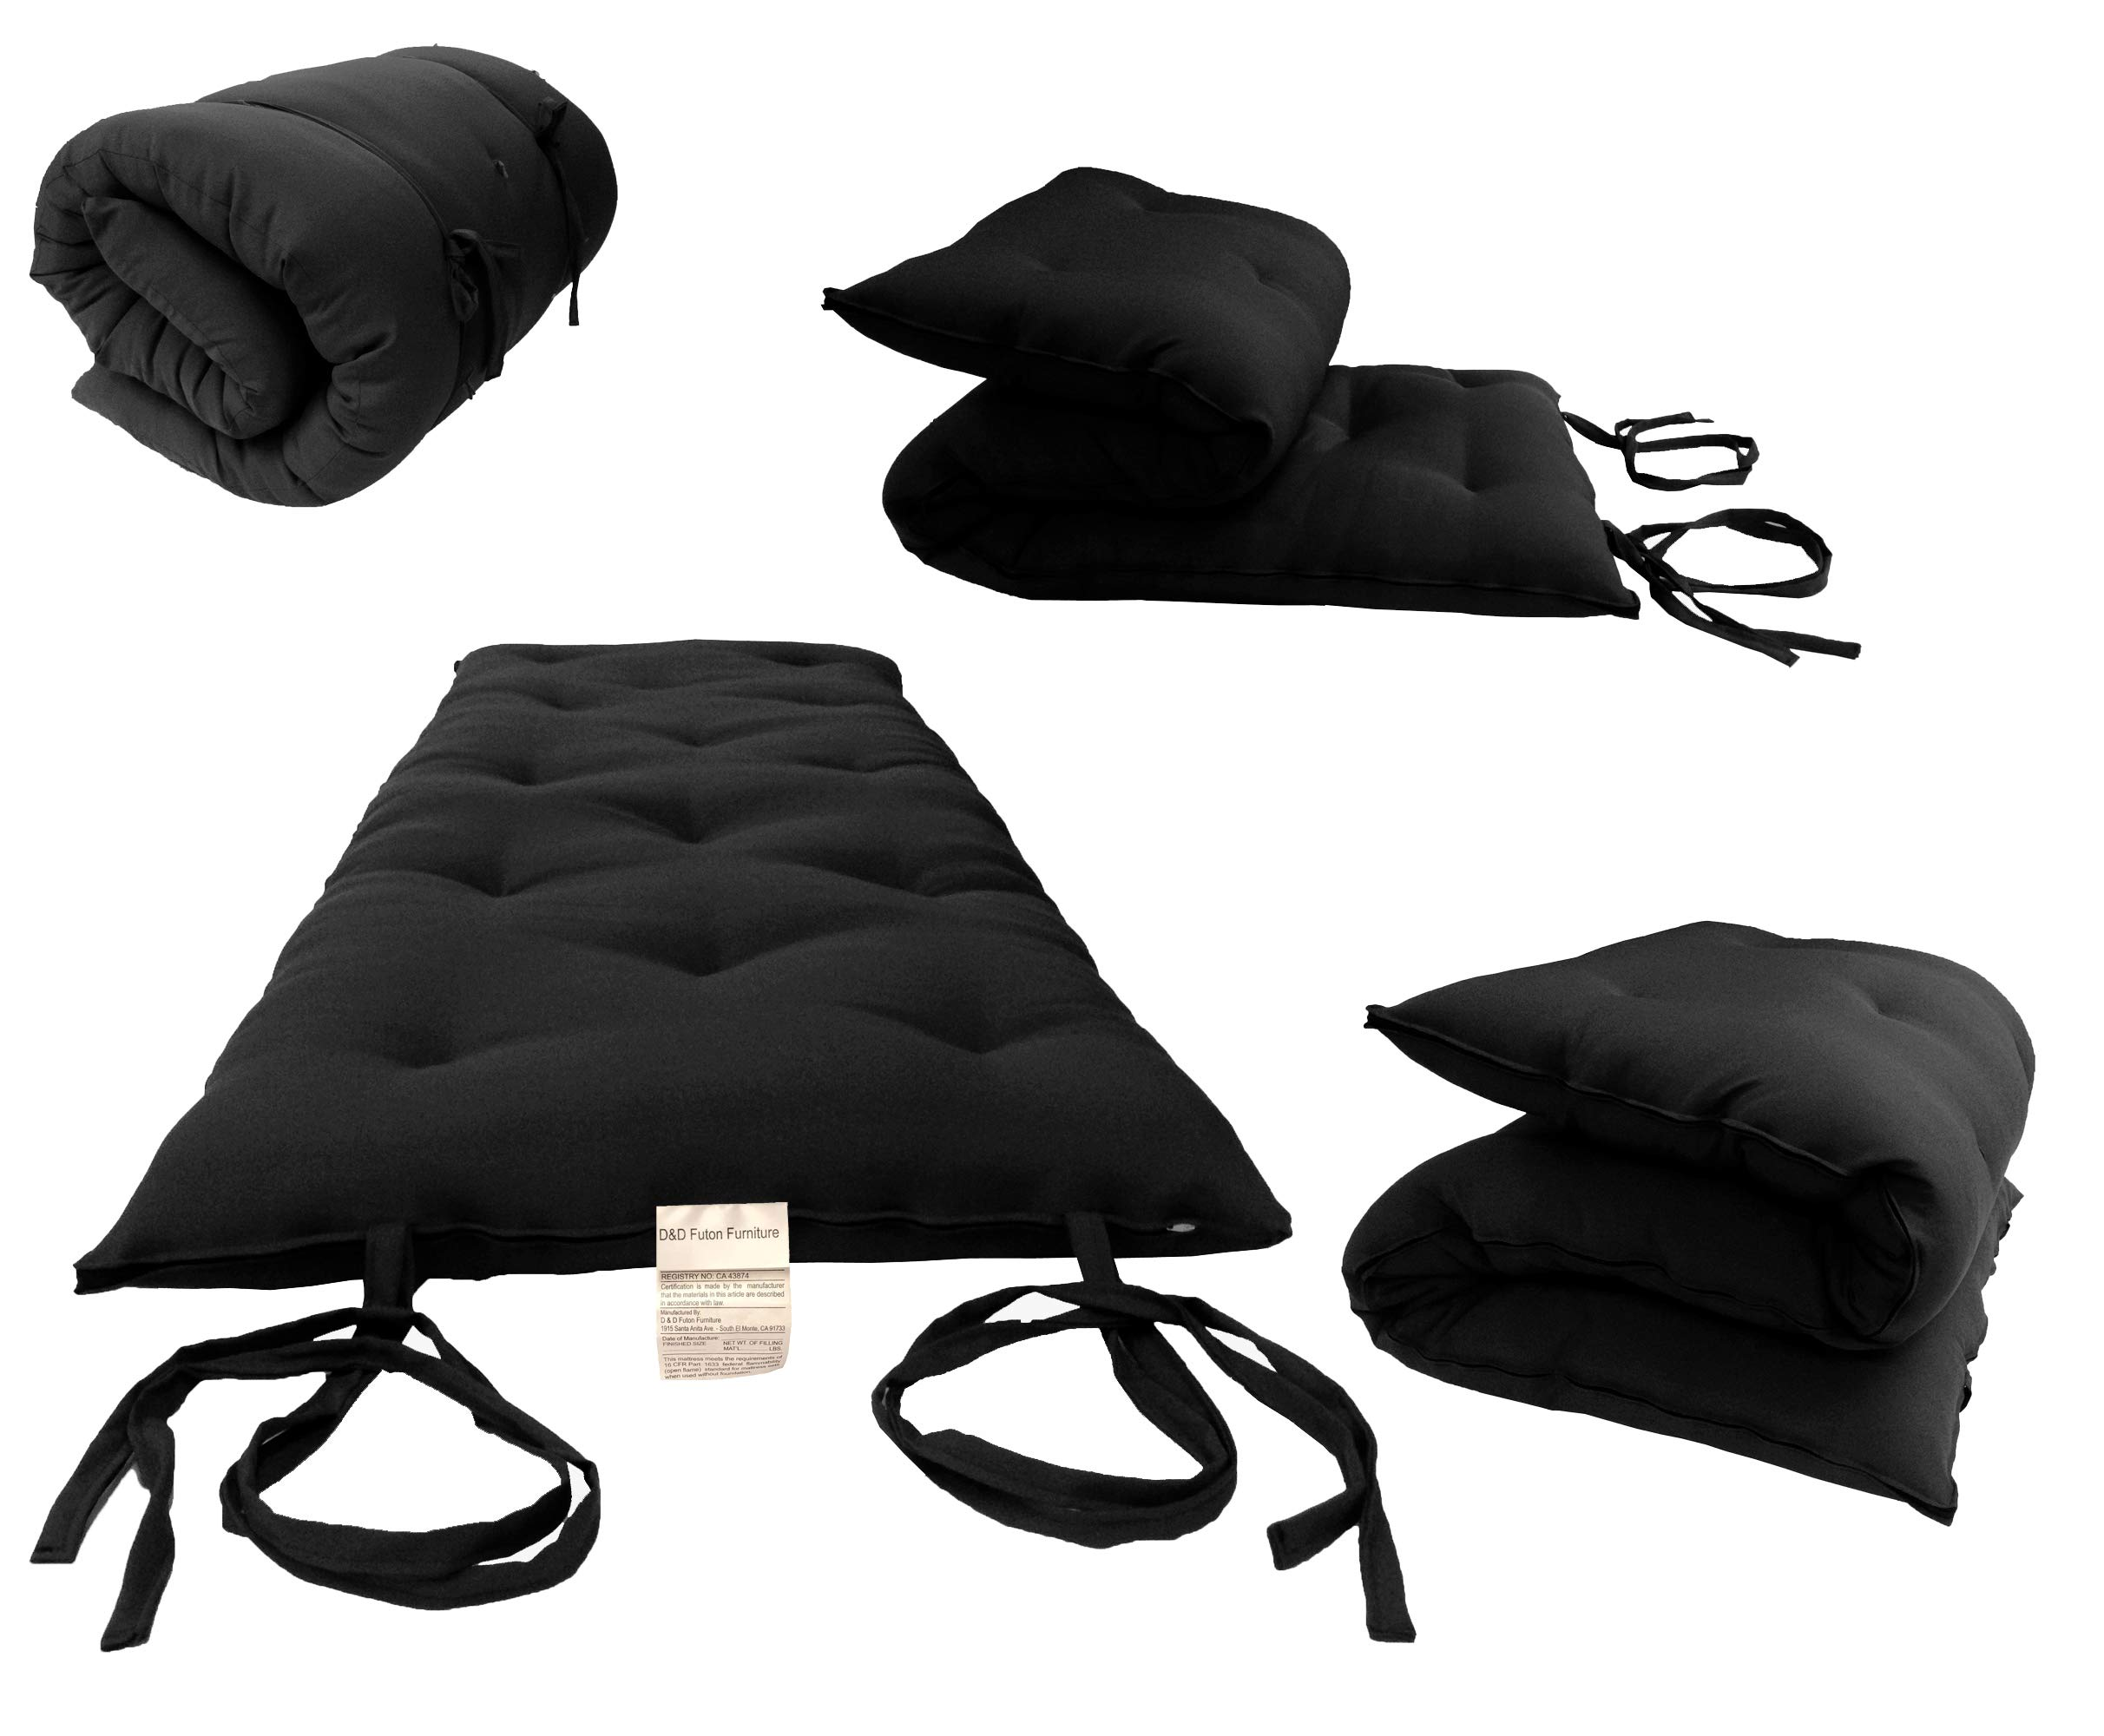 D&D Futon Furniture Full Size Black Traditional Japanese Floor Futon Mattresses, Foldable Cushion Mats, Yoga, Meditaion 54'' Wide X 80'' Long 3'' Thick by D&D Futon Furniture